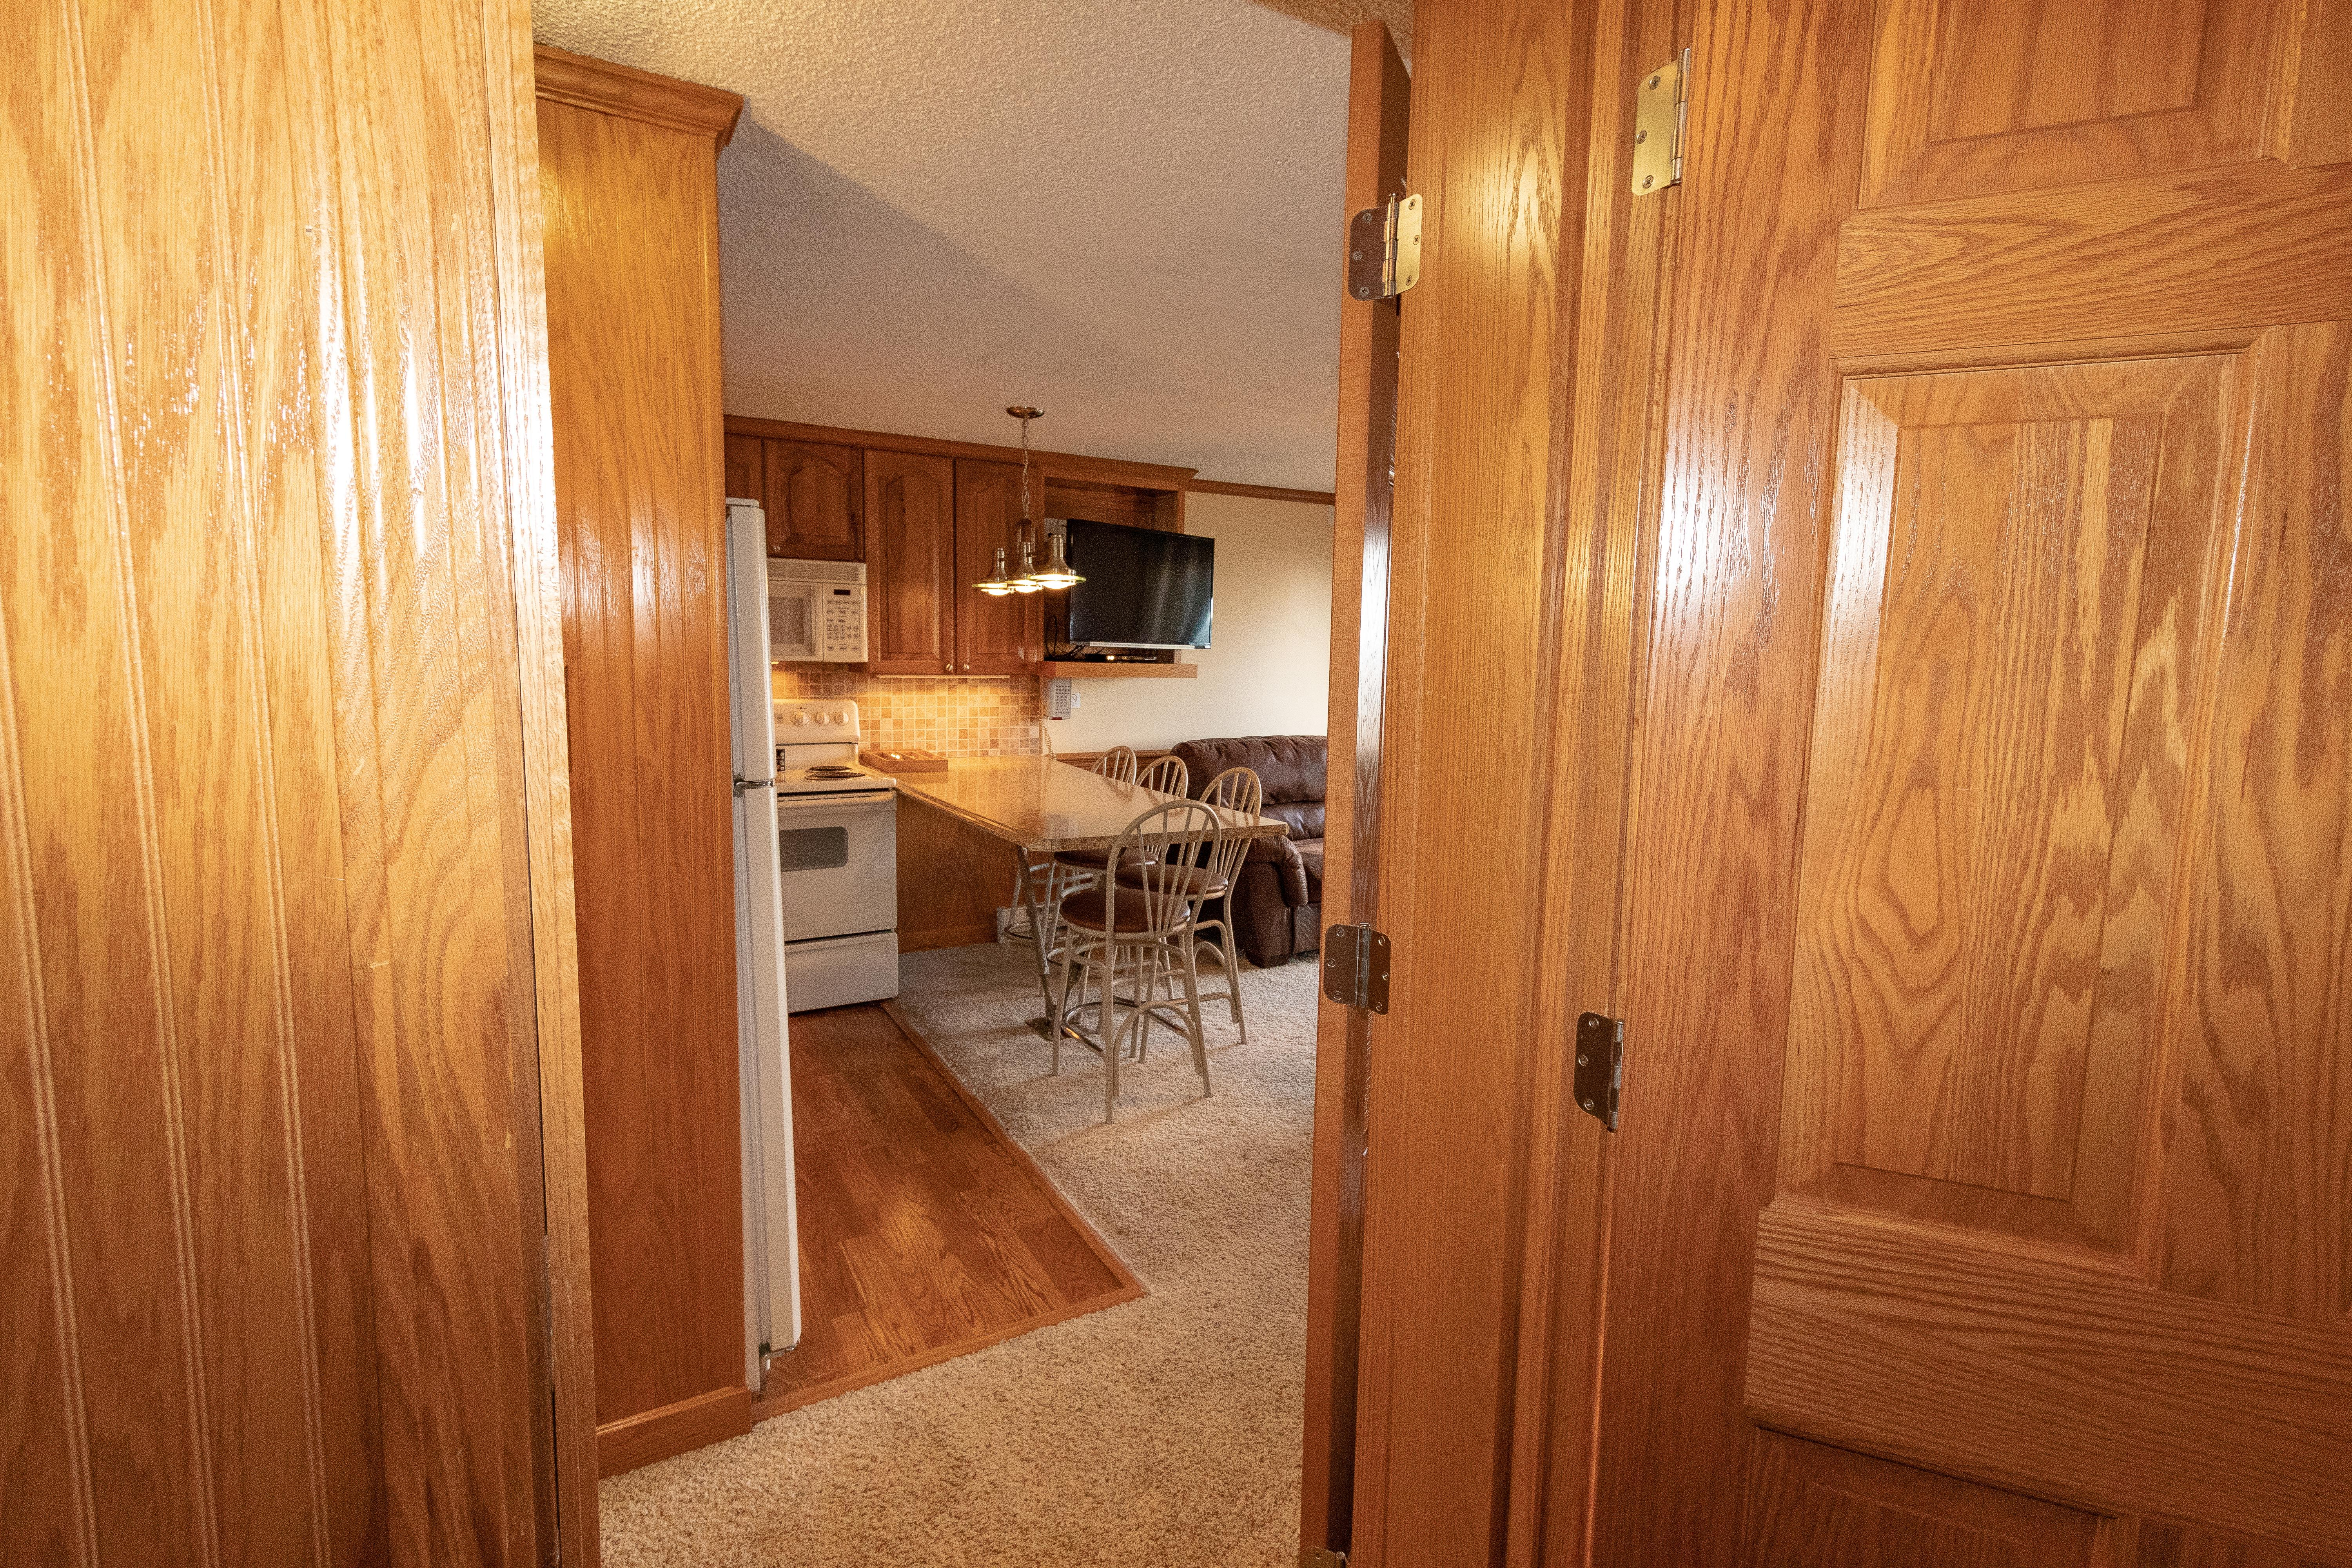 Connects to next door unit ML326 (rented separately)